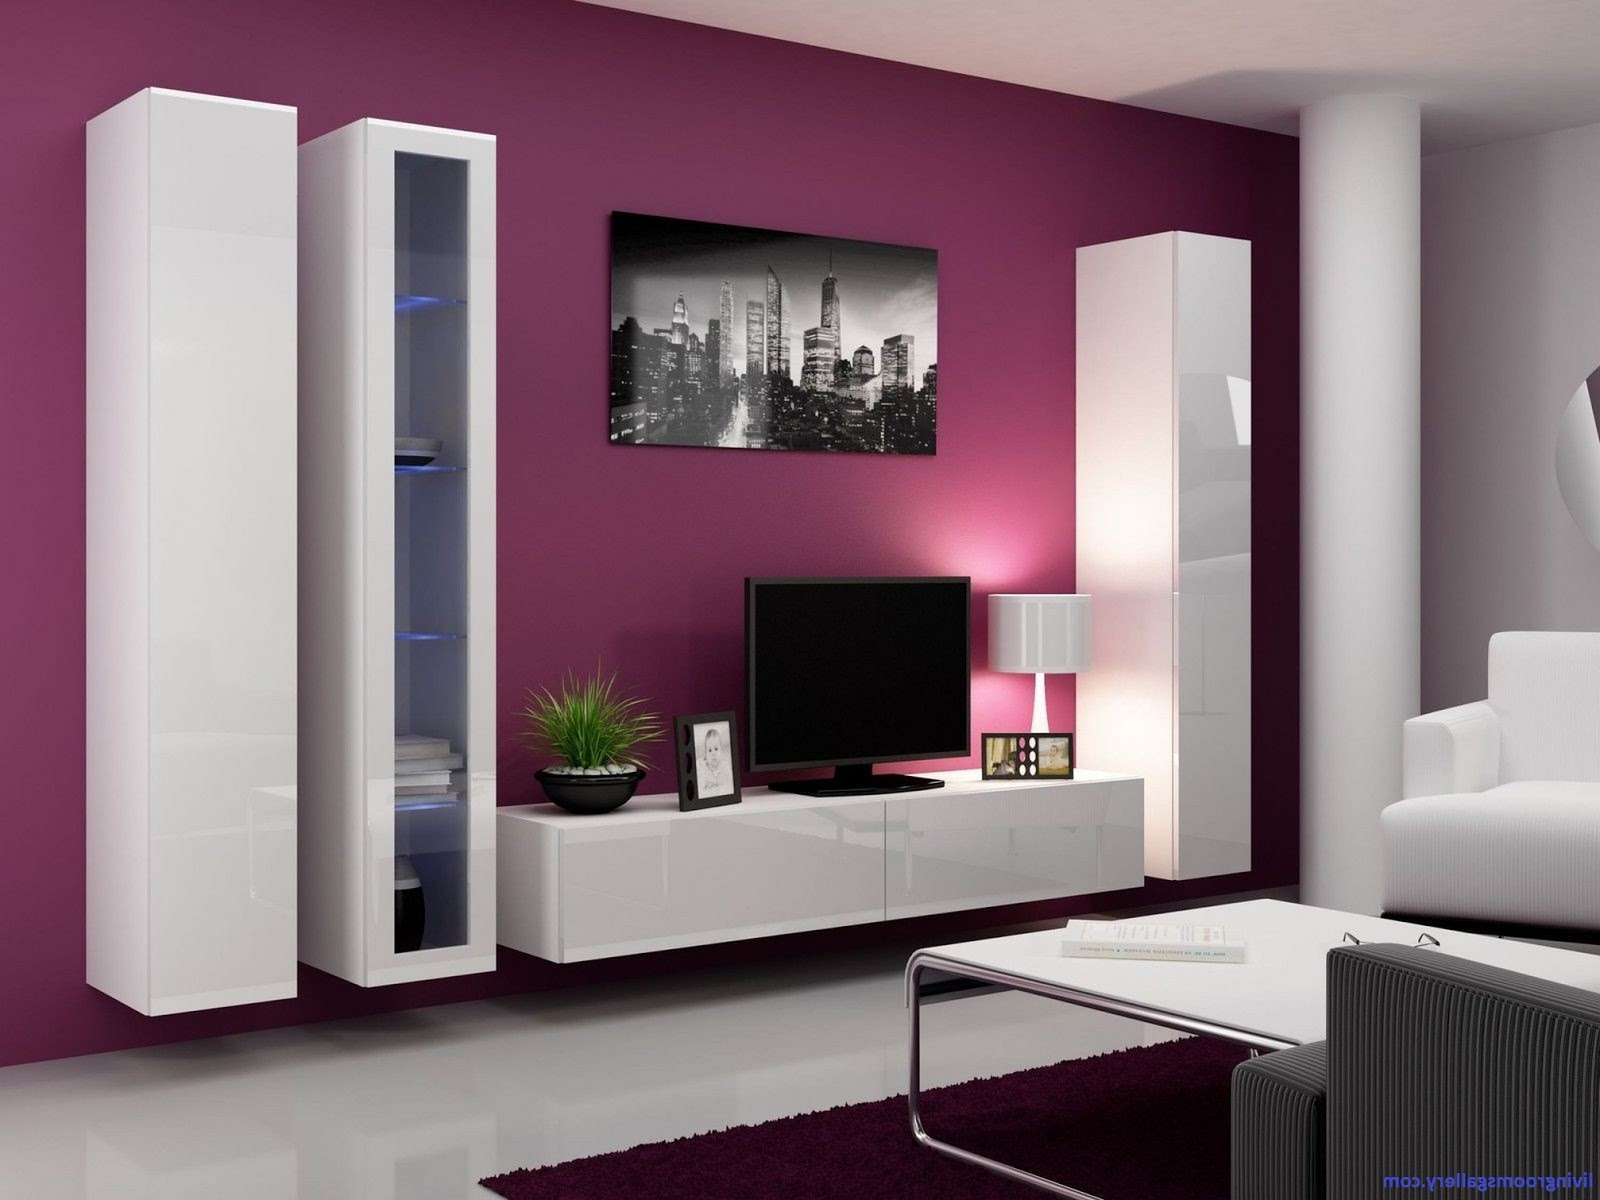 Tv : Modern Tv Cabinets Incredible 12 Dark Chocolate Finish Intended For Funky Tv Cabinets (View 16 of 20)